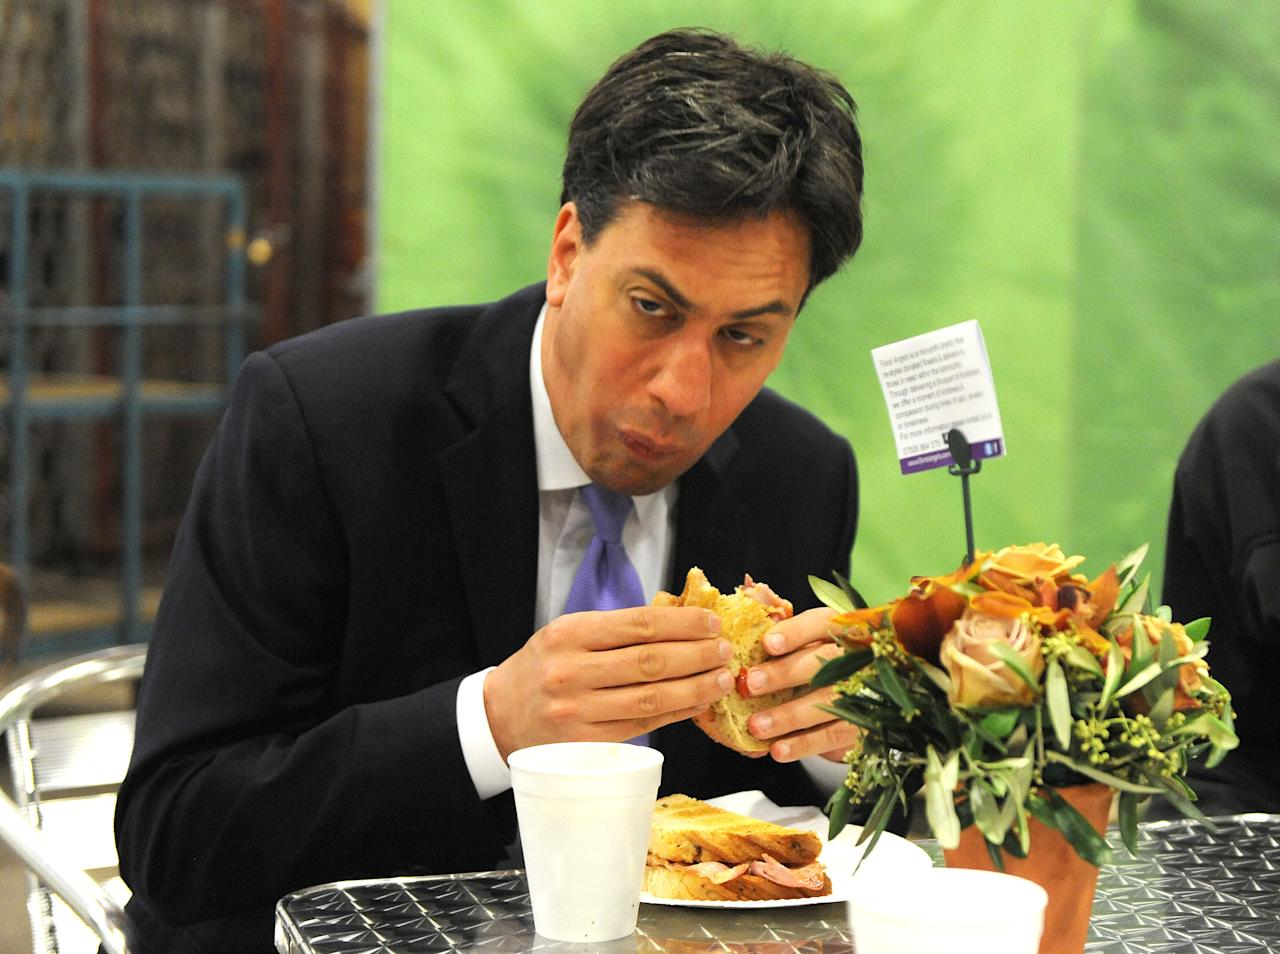 <p>Ed Miliband tucks into a bacon sandwich on a morning trip to buy flowers for his wife. </p>